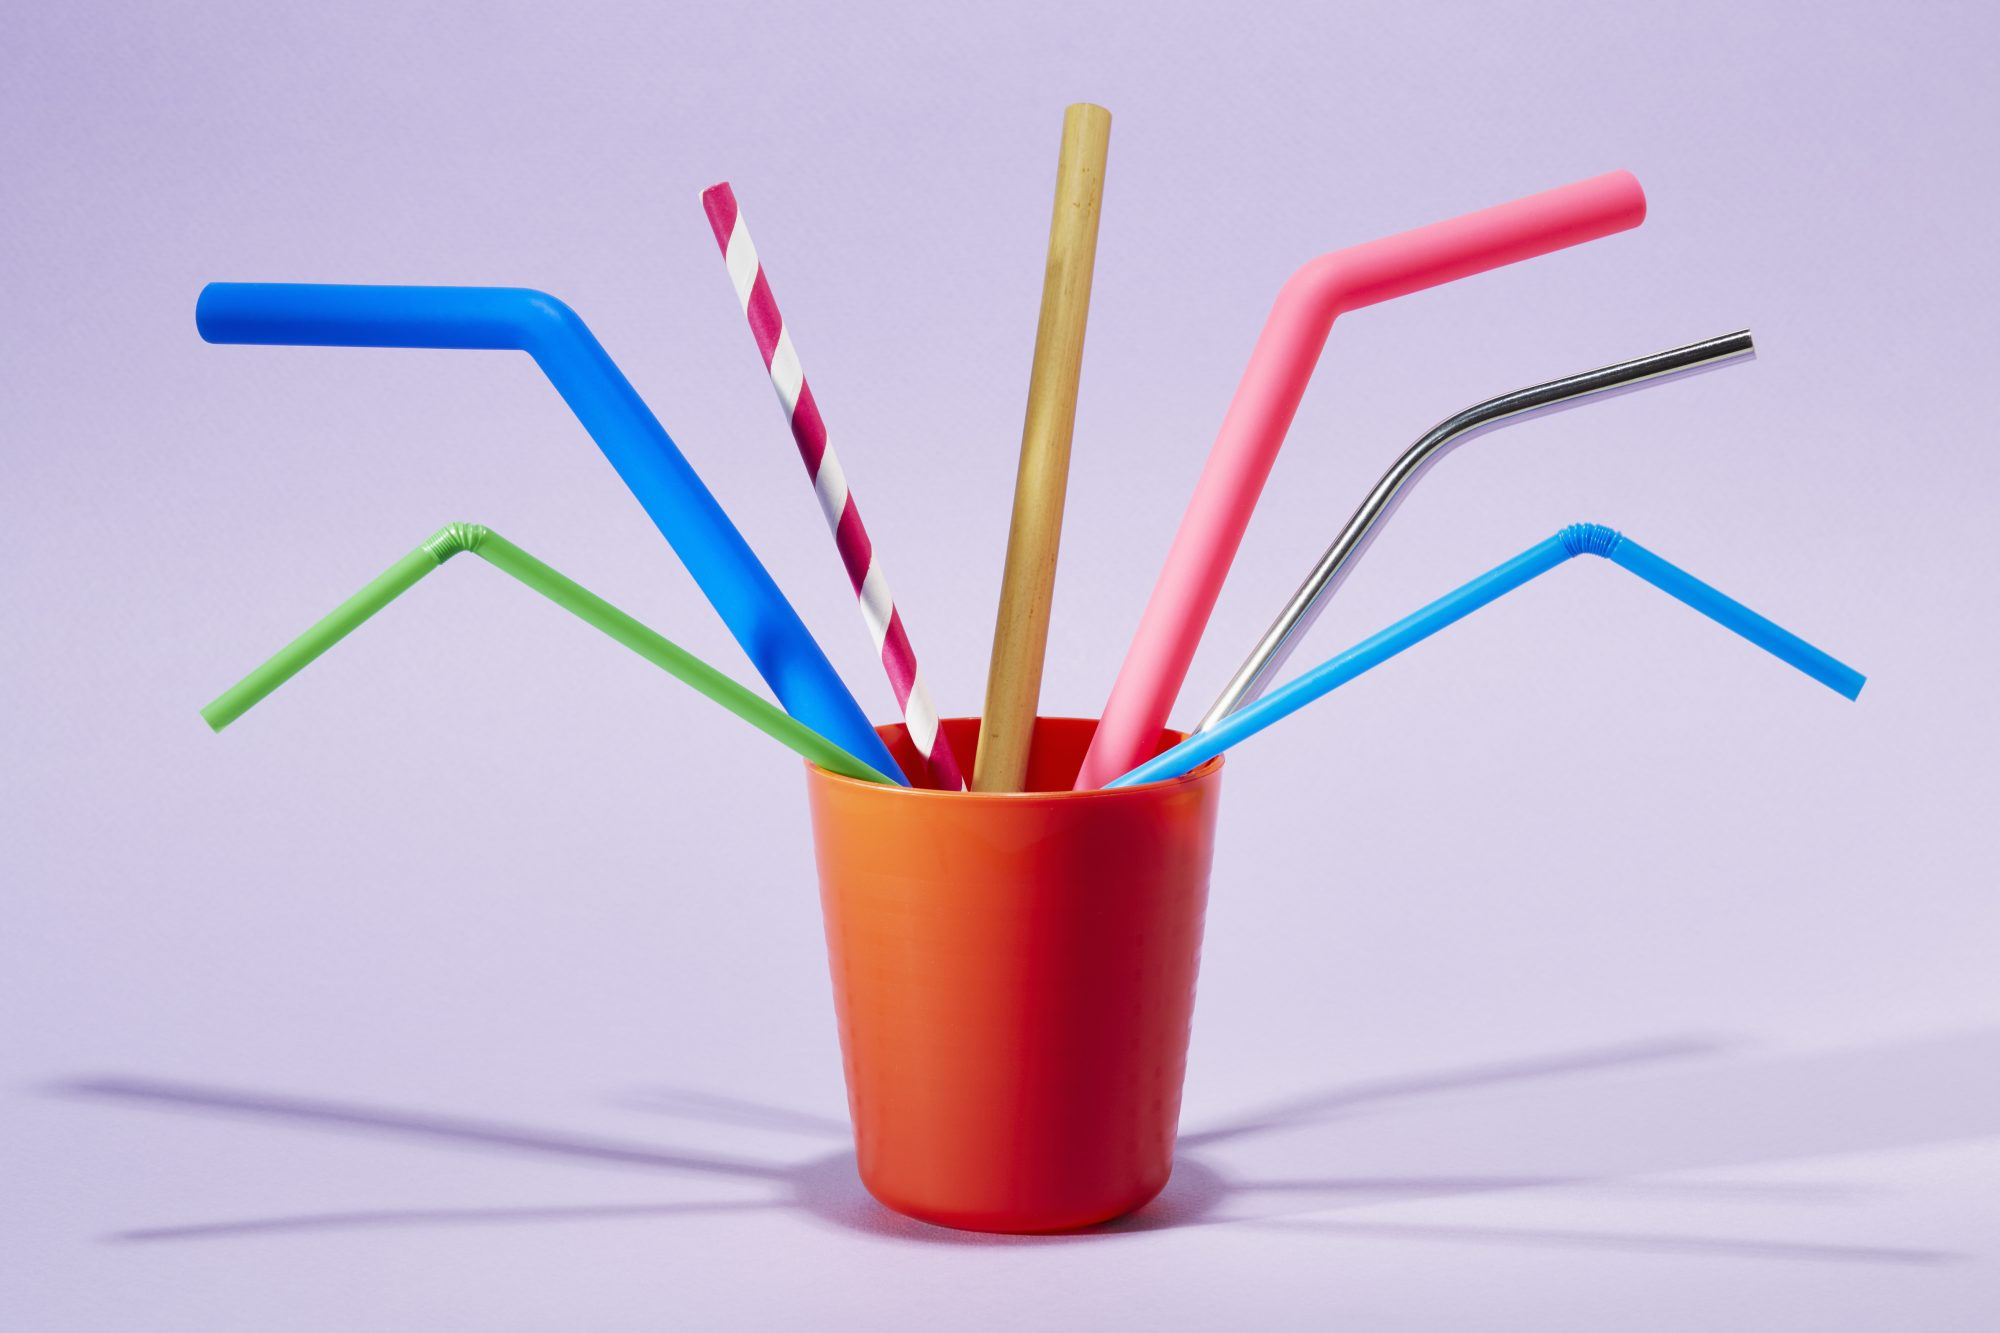 Seven different drinking straws in a cup